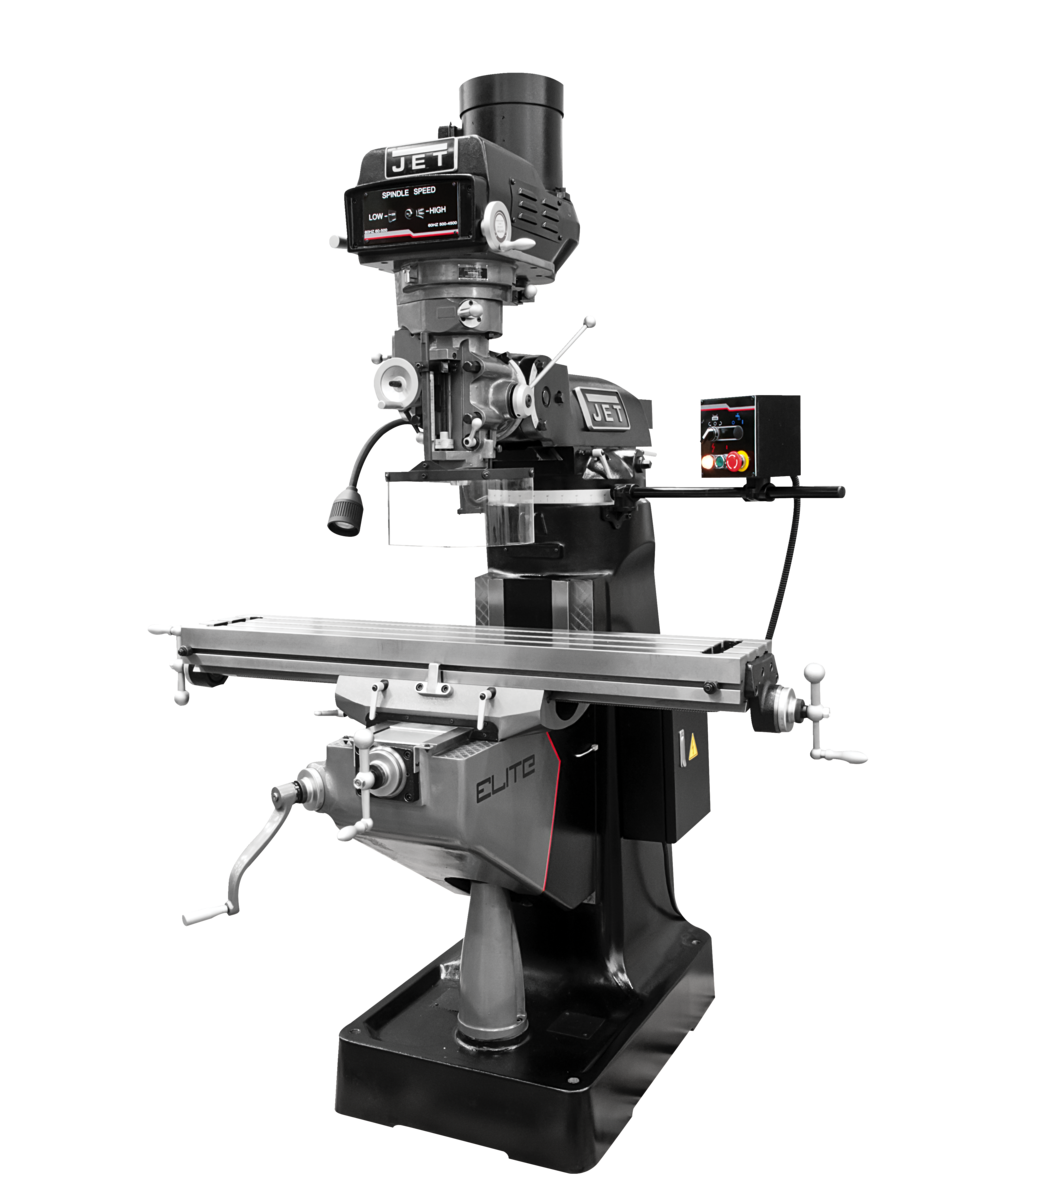 ETM-949 Mill with 2-Axis ACU-RITE 303 DRO